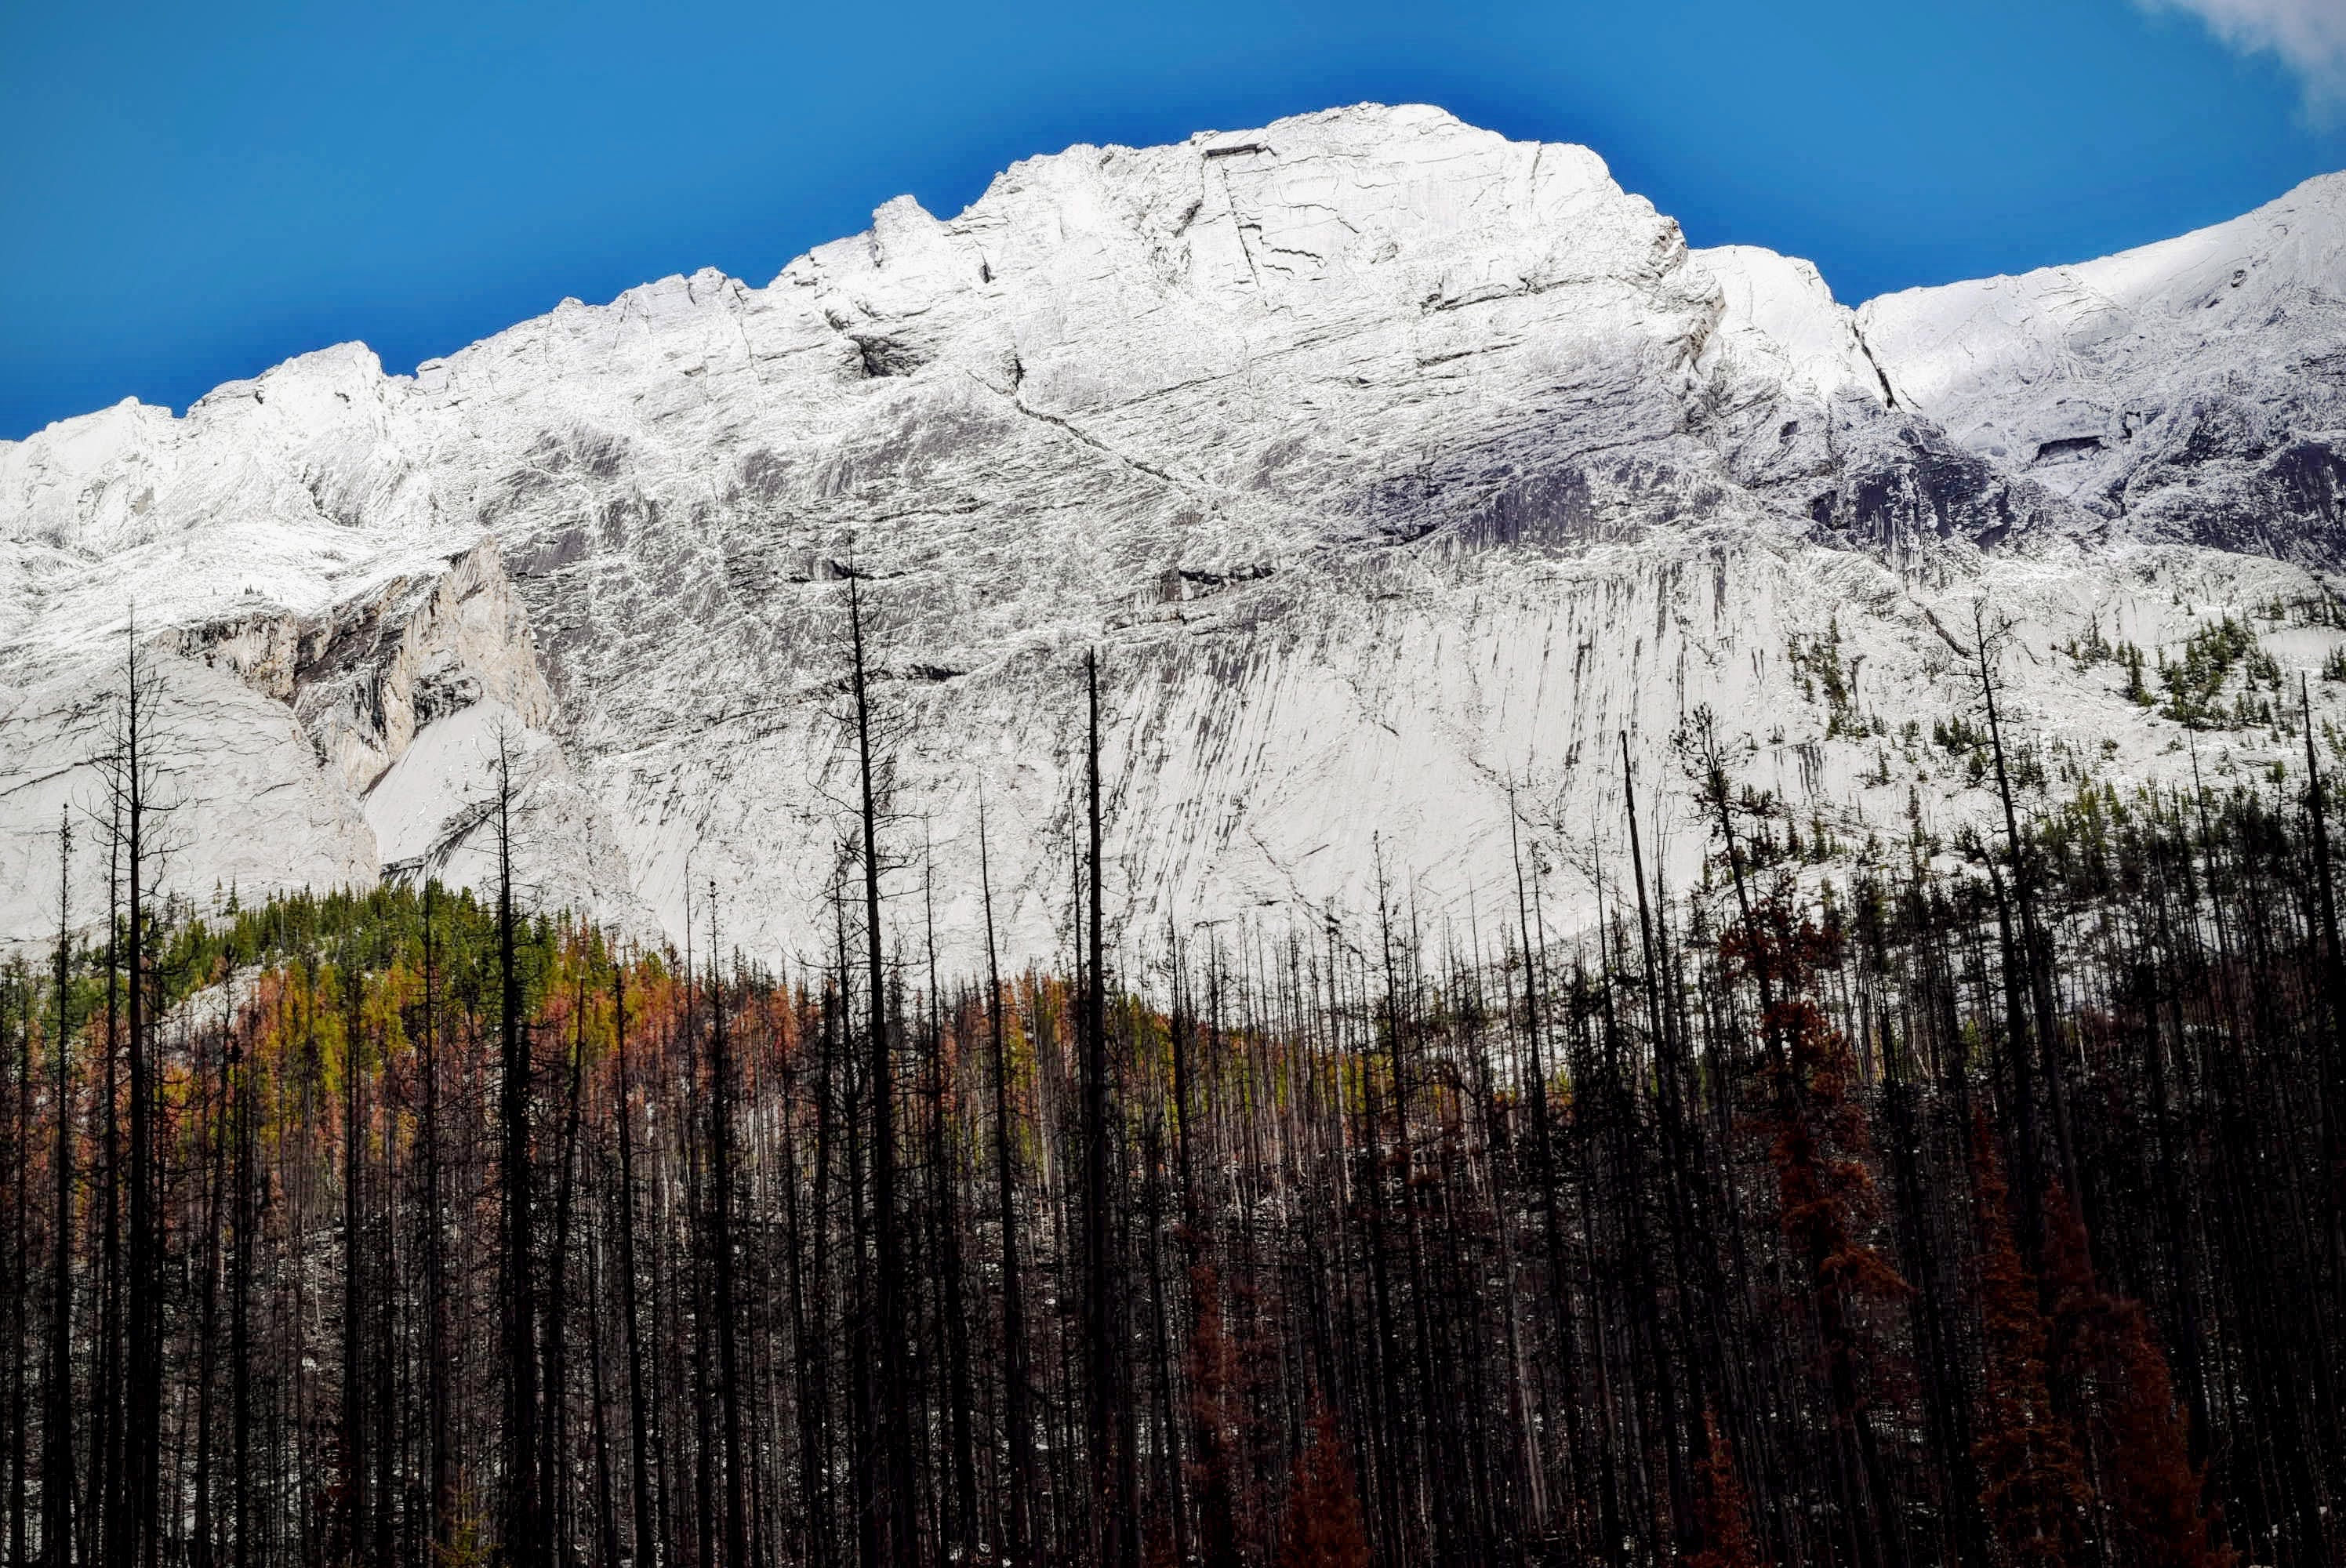 Trees Near Snow Covered Mountain during Daytime